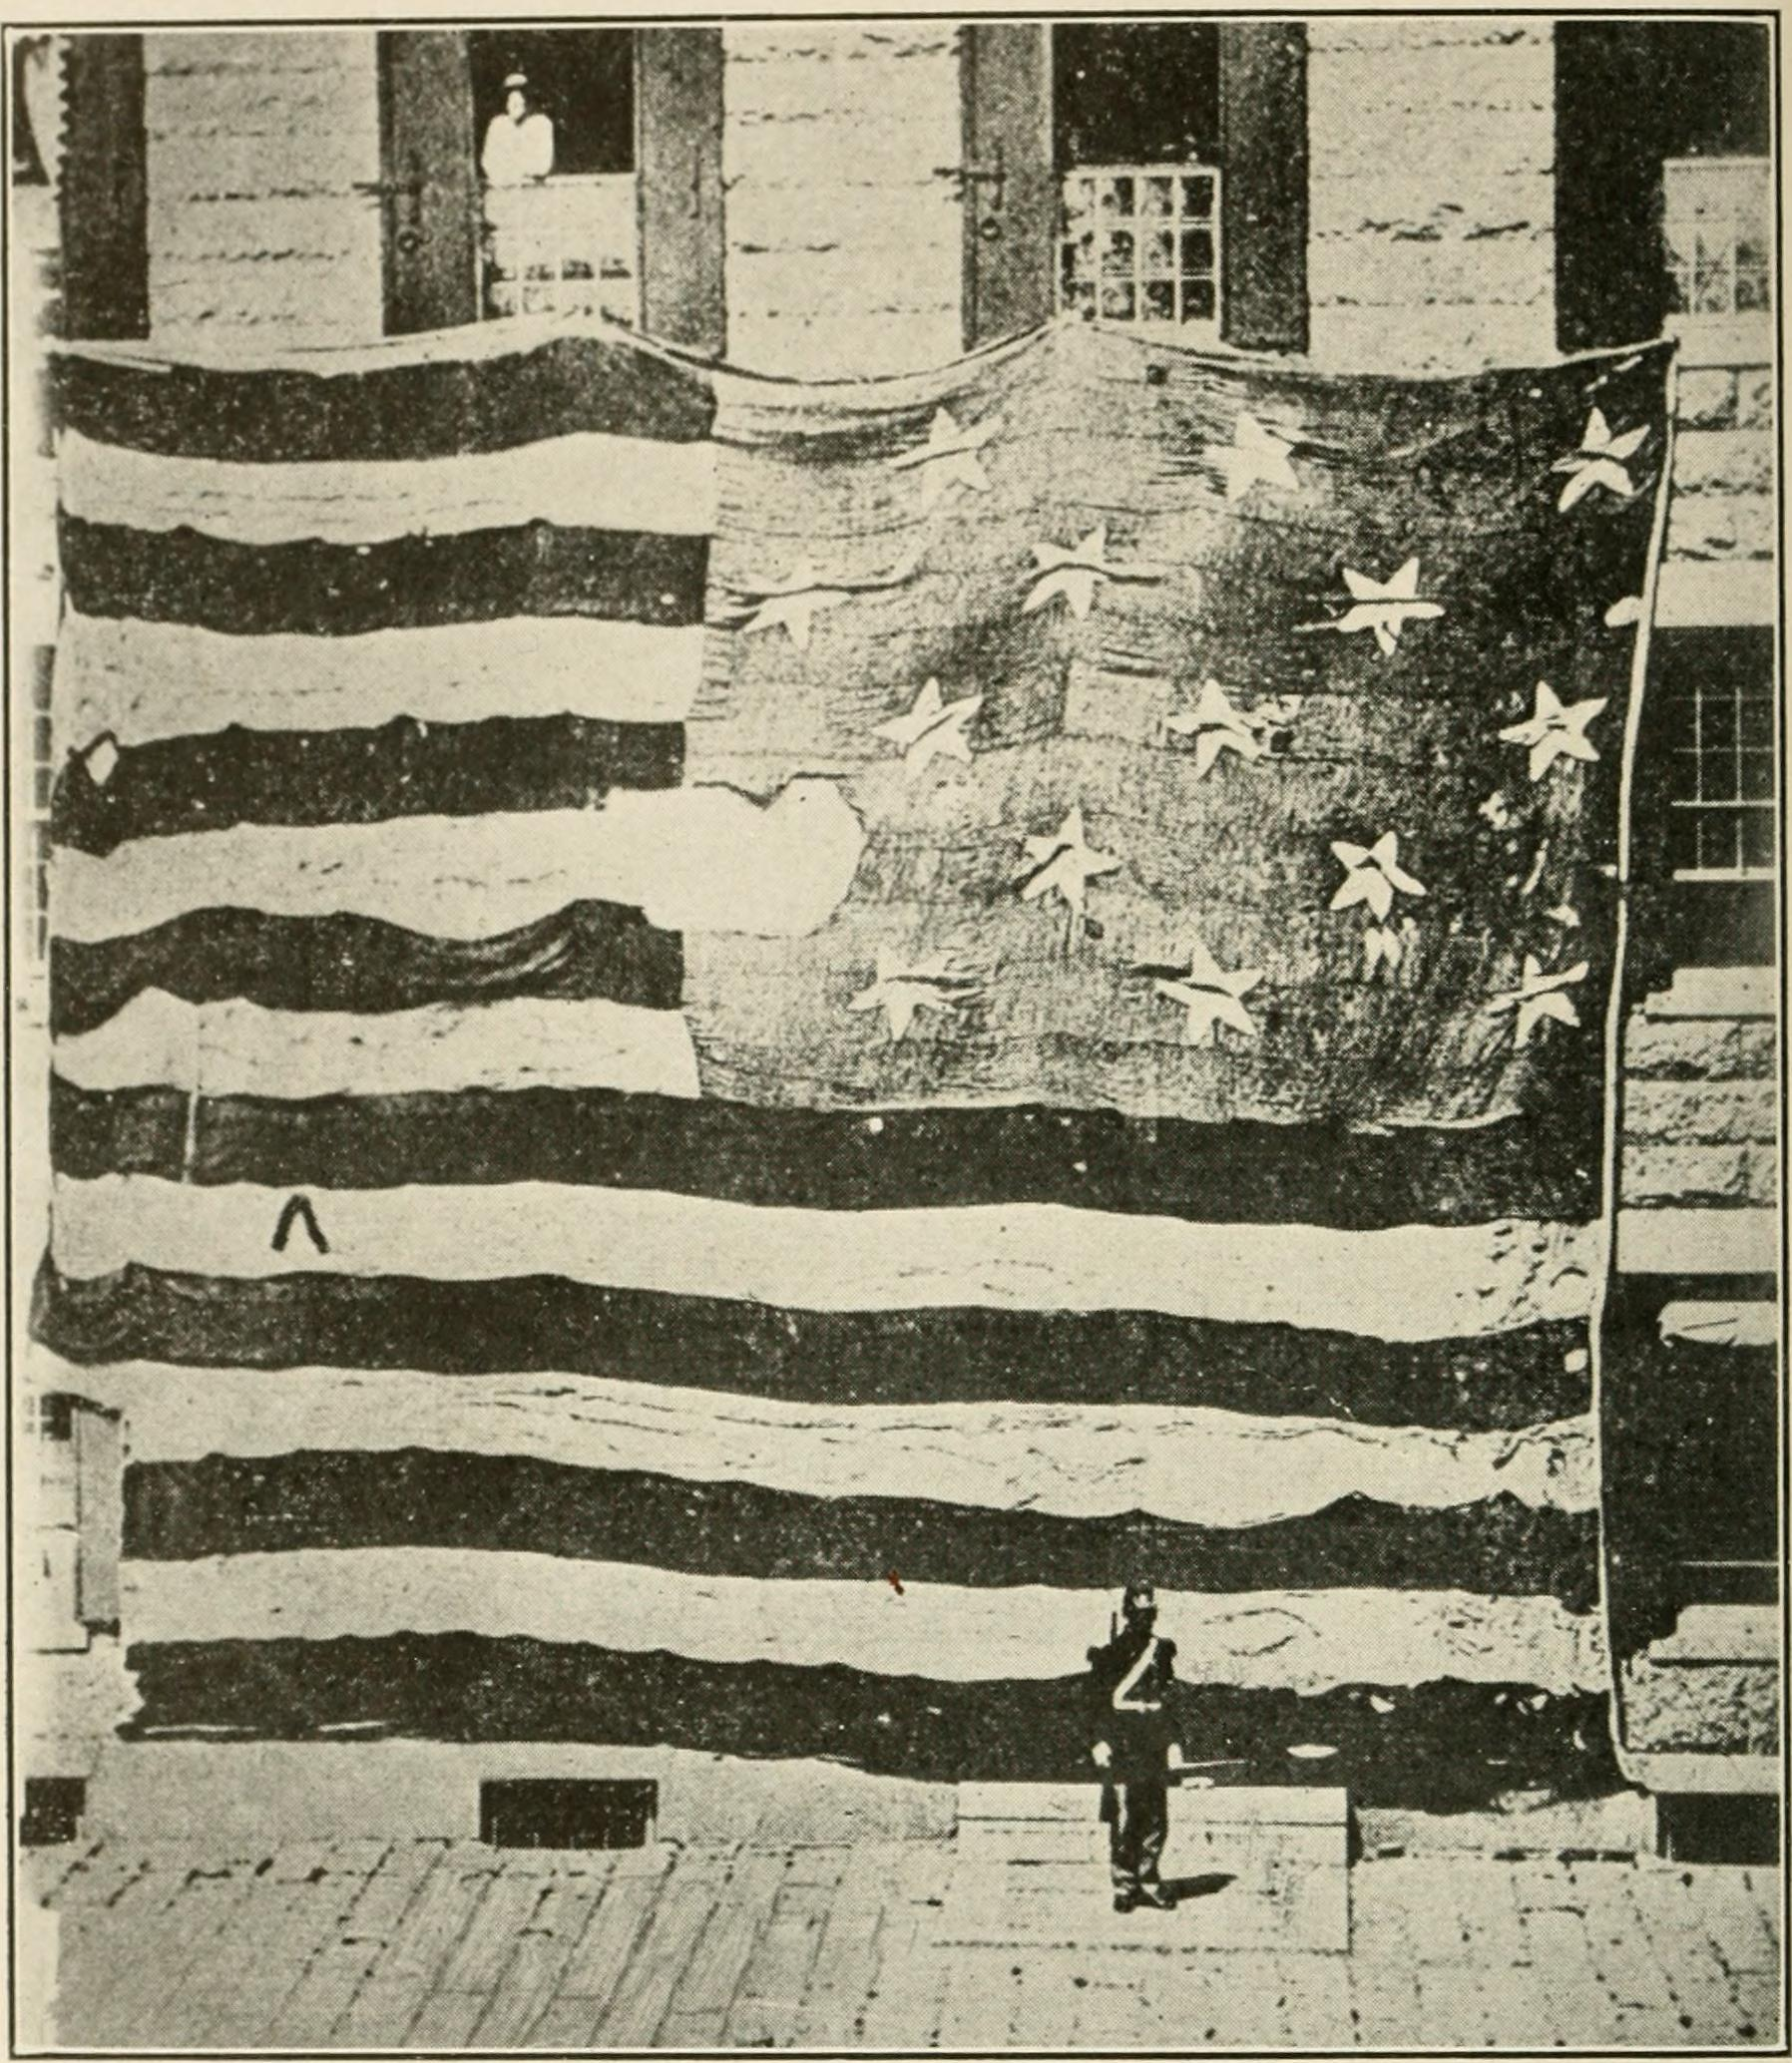 Flag that flew over Fort McHenry during its bombardment in 1814, which was witnessed by Francis Scott Key. The family of Major Armistead, the commander of the fort, kept the flag until they donated it to the Smithsonian in 1912.